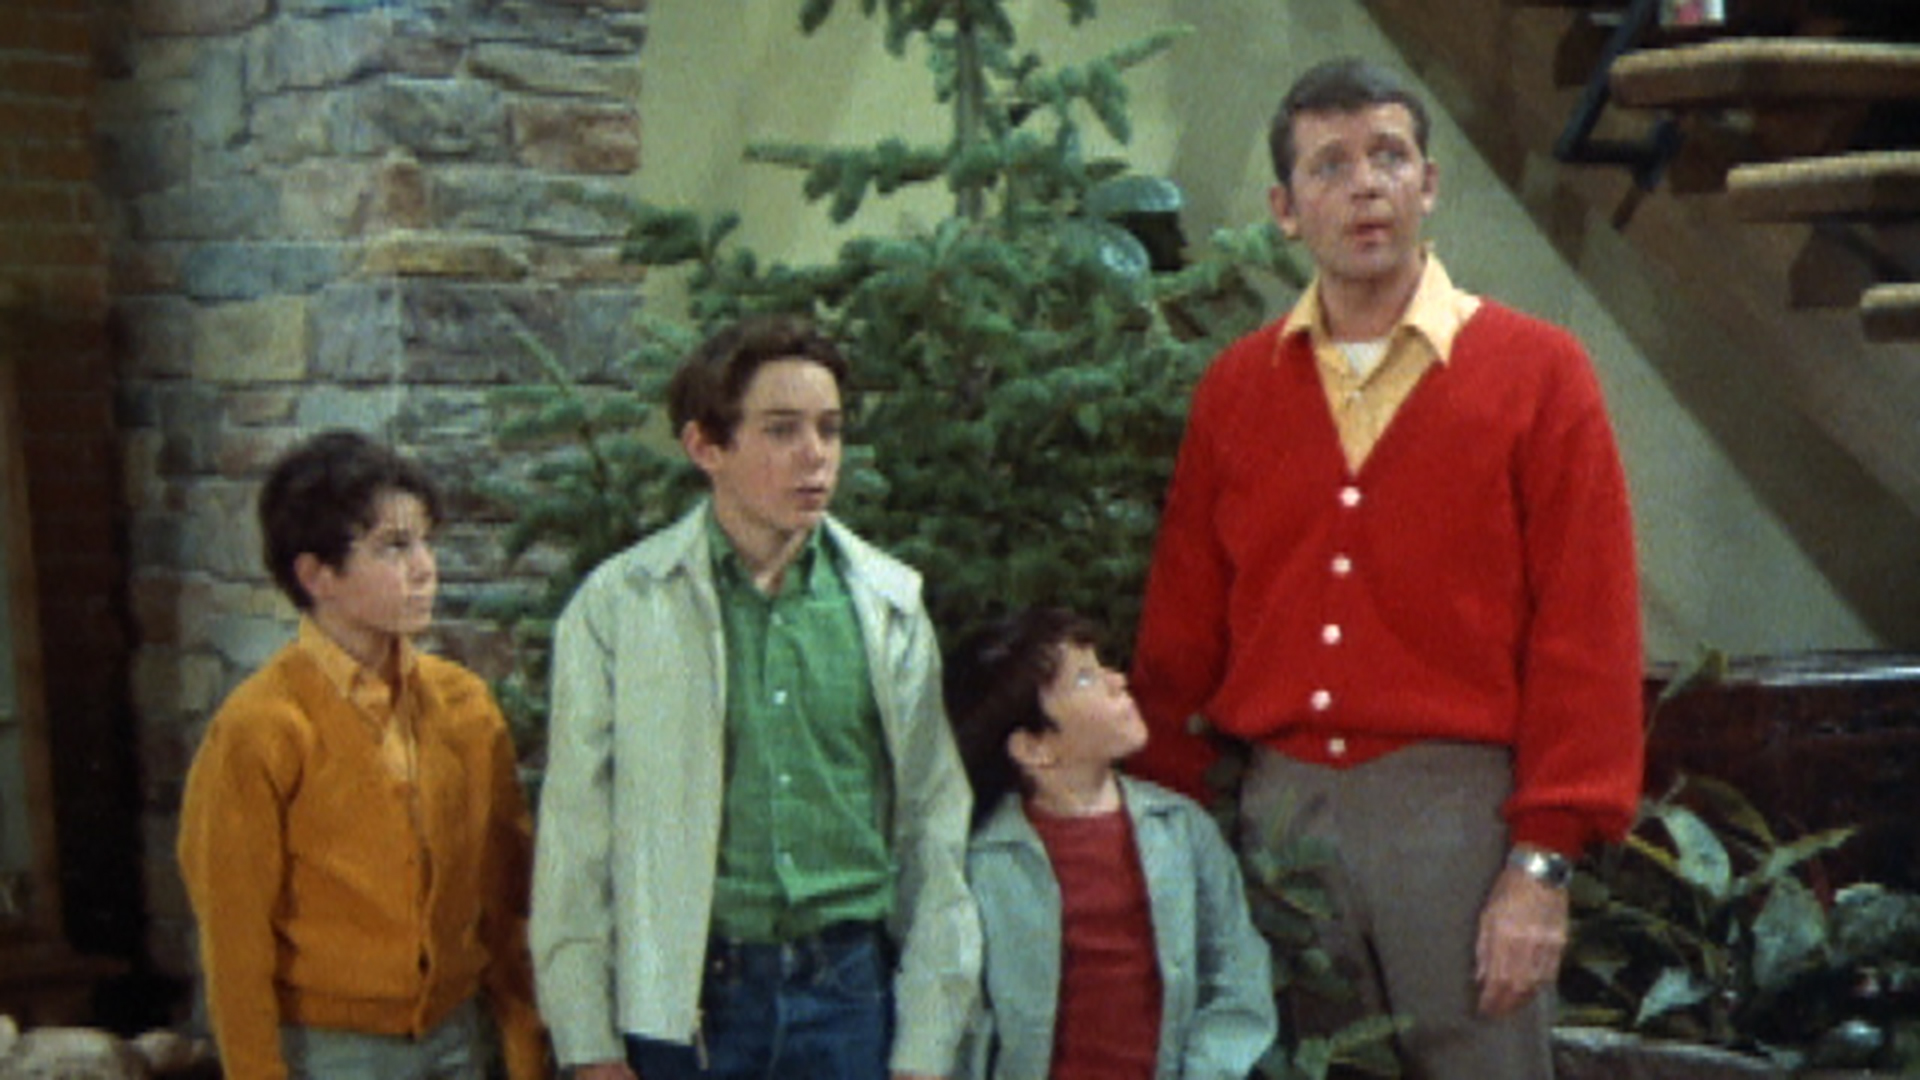 A Very Brady Christmas Cindy.Watch The Brady Bunch Season 1 Episode 12 The Voice Of Christmas Full Show On Cbs All Access